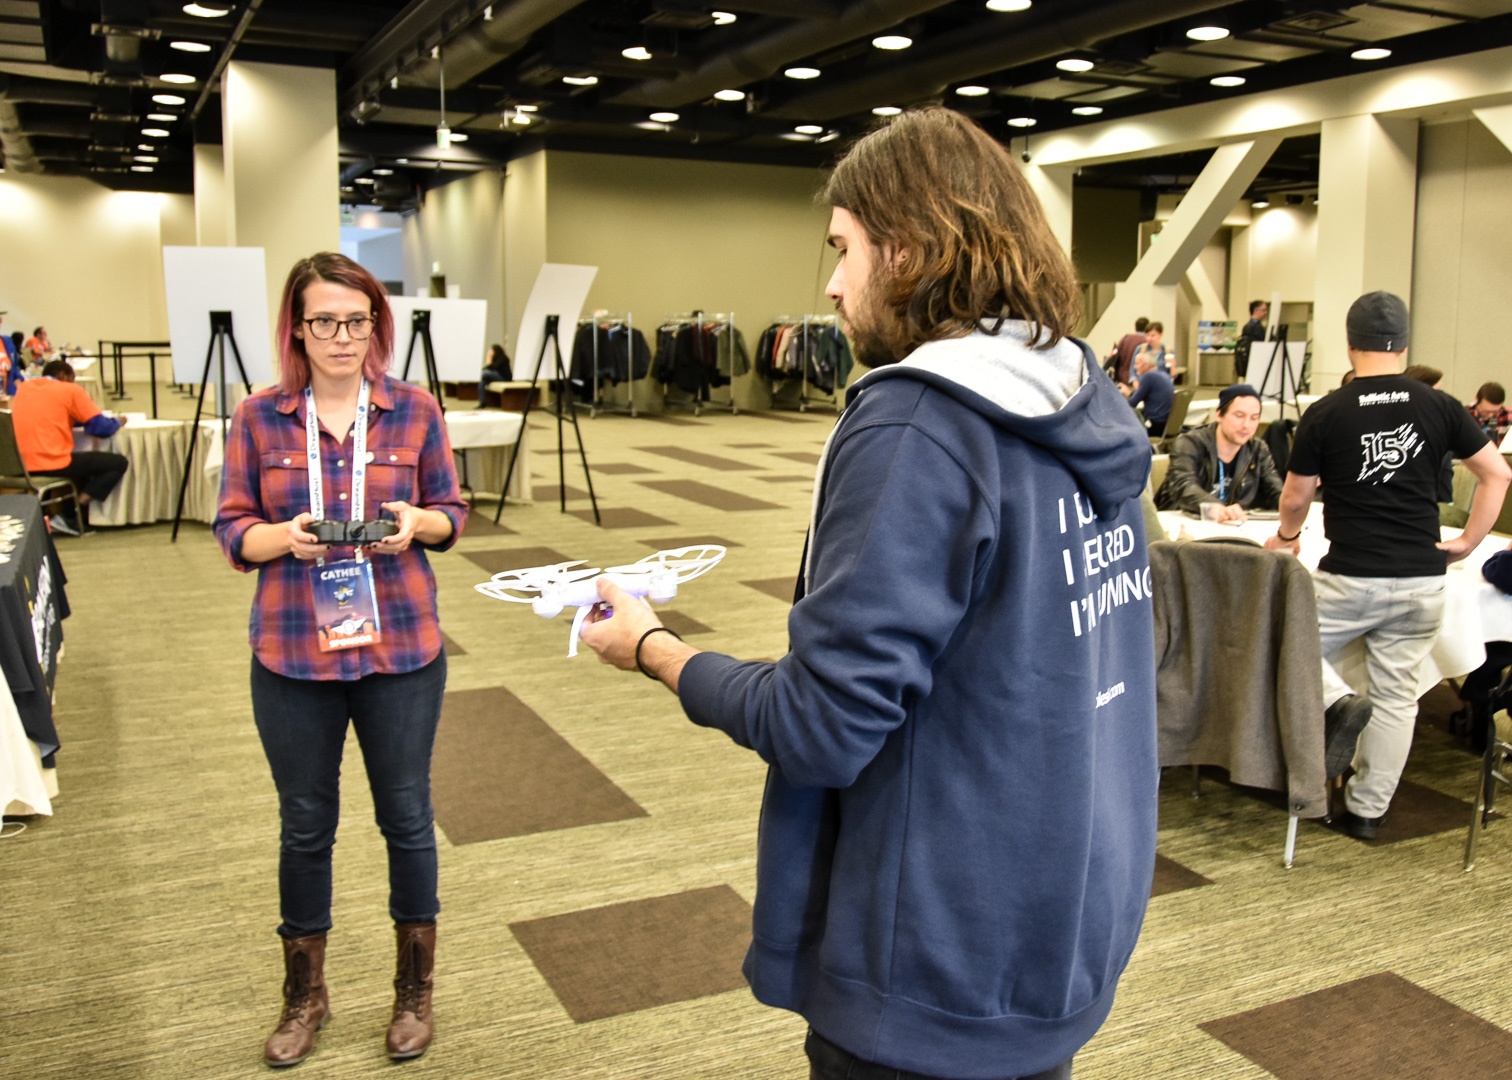 WordCamp Seattle, Robert Aguilar demonstrating the Plesk drones to Cathee Smith from DreamHost